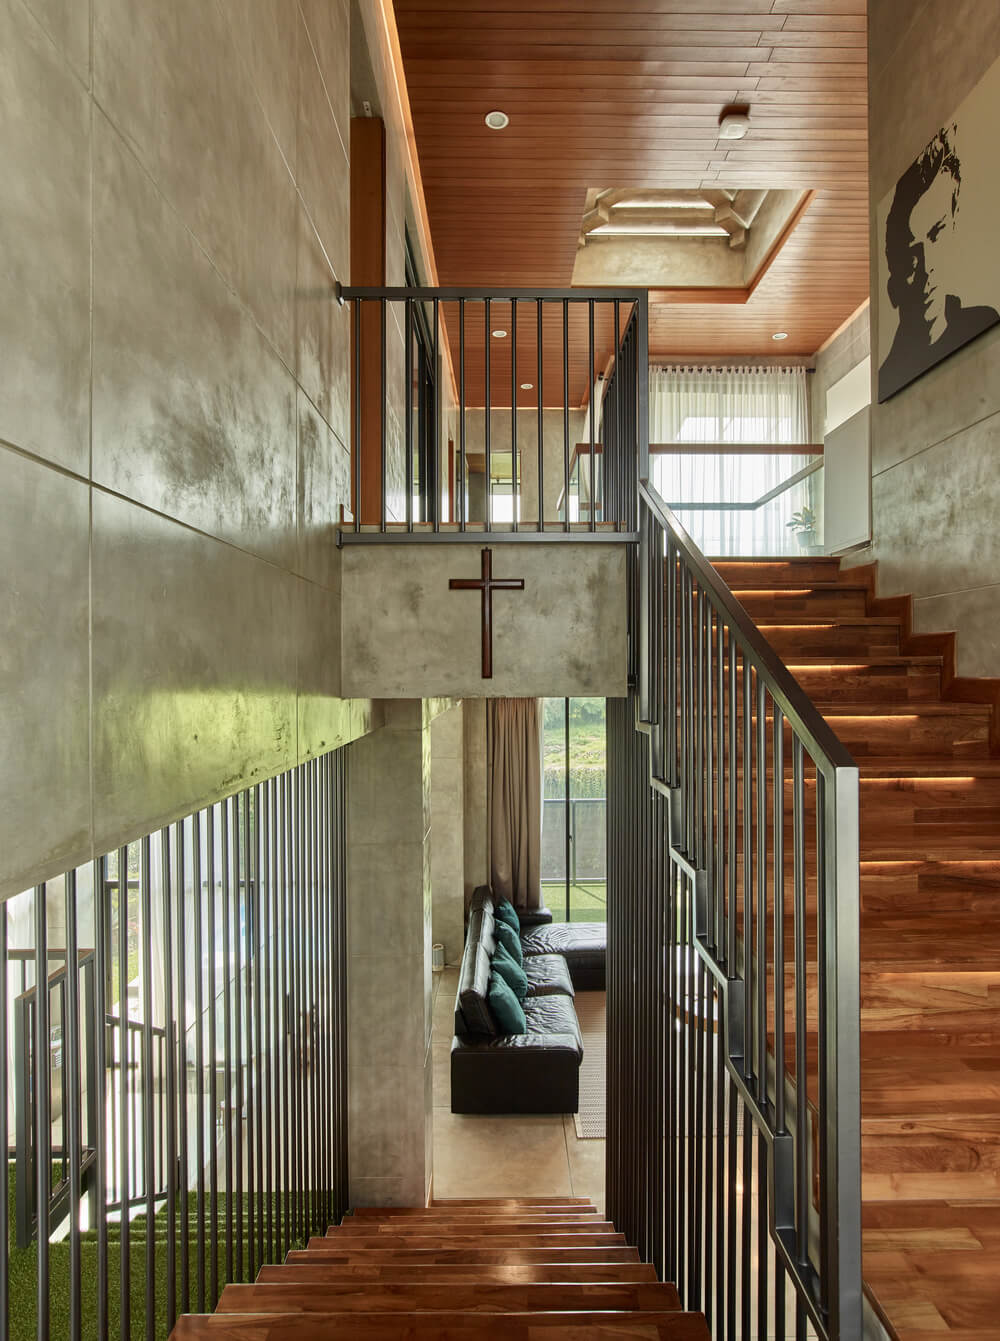 The staircase has wooden steps that stand out against the black railings and concrete walls.